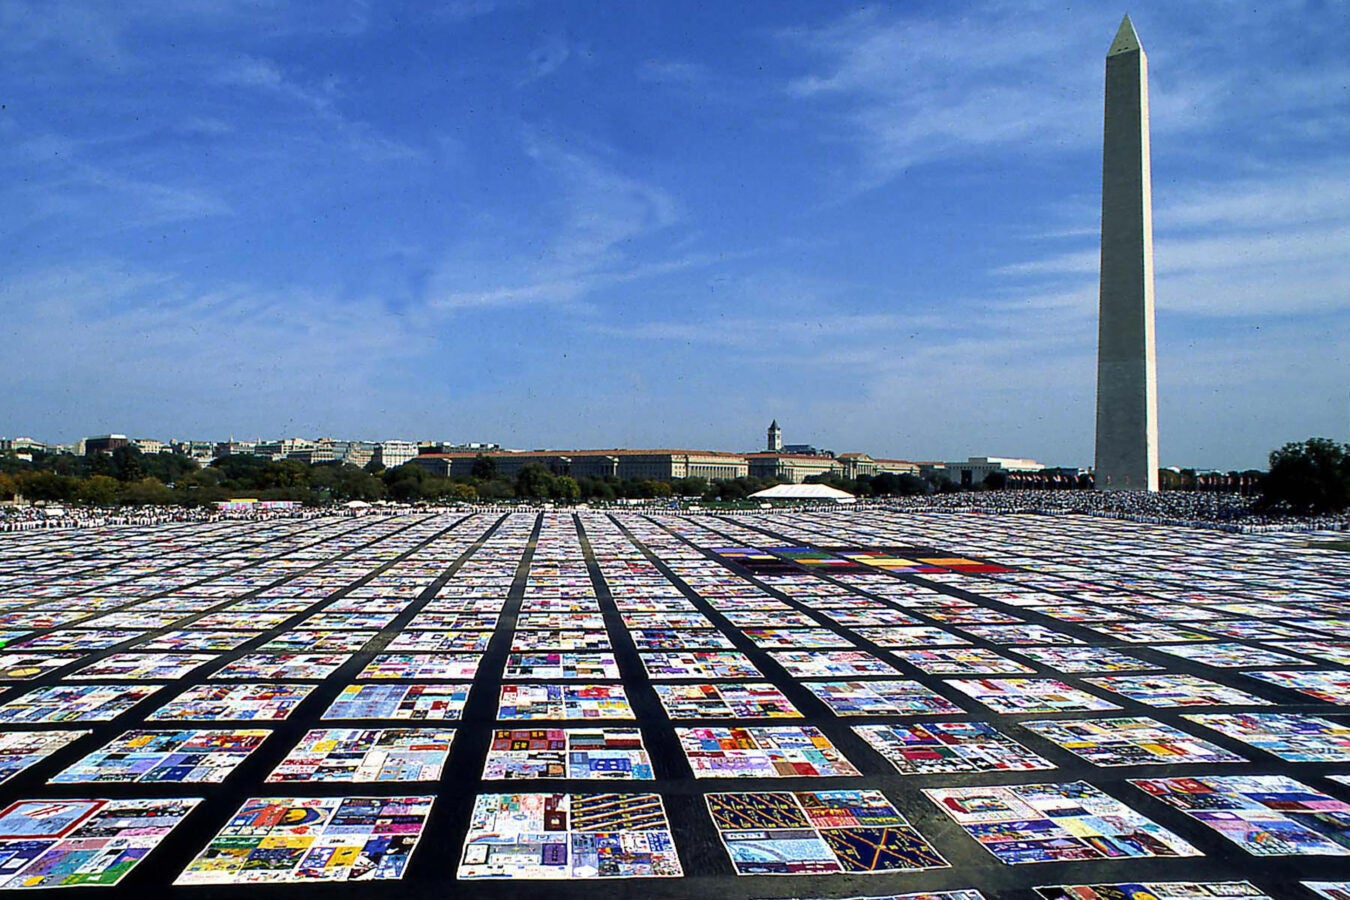 he AIDS quilt in front of the Washington Monument